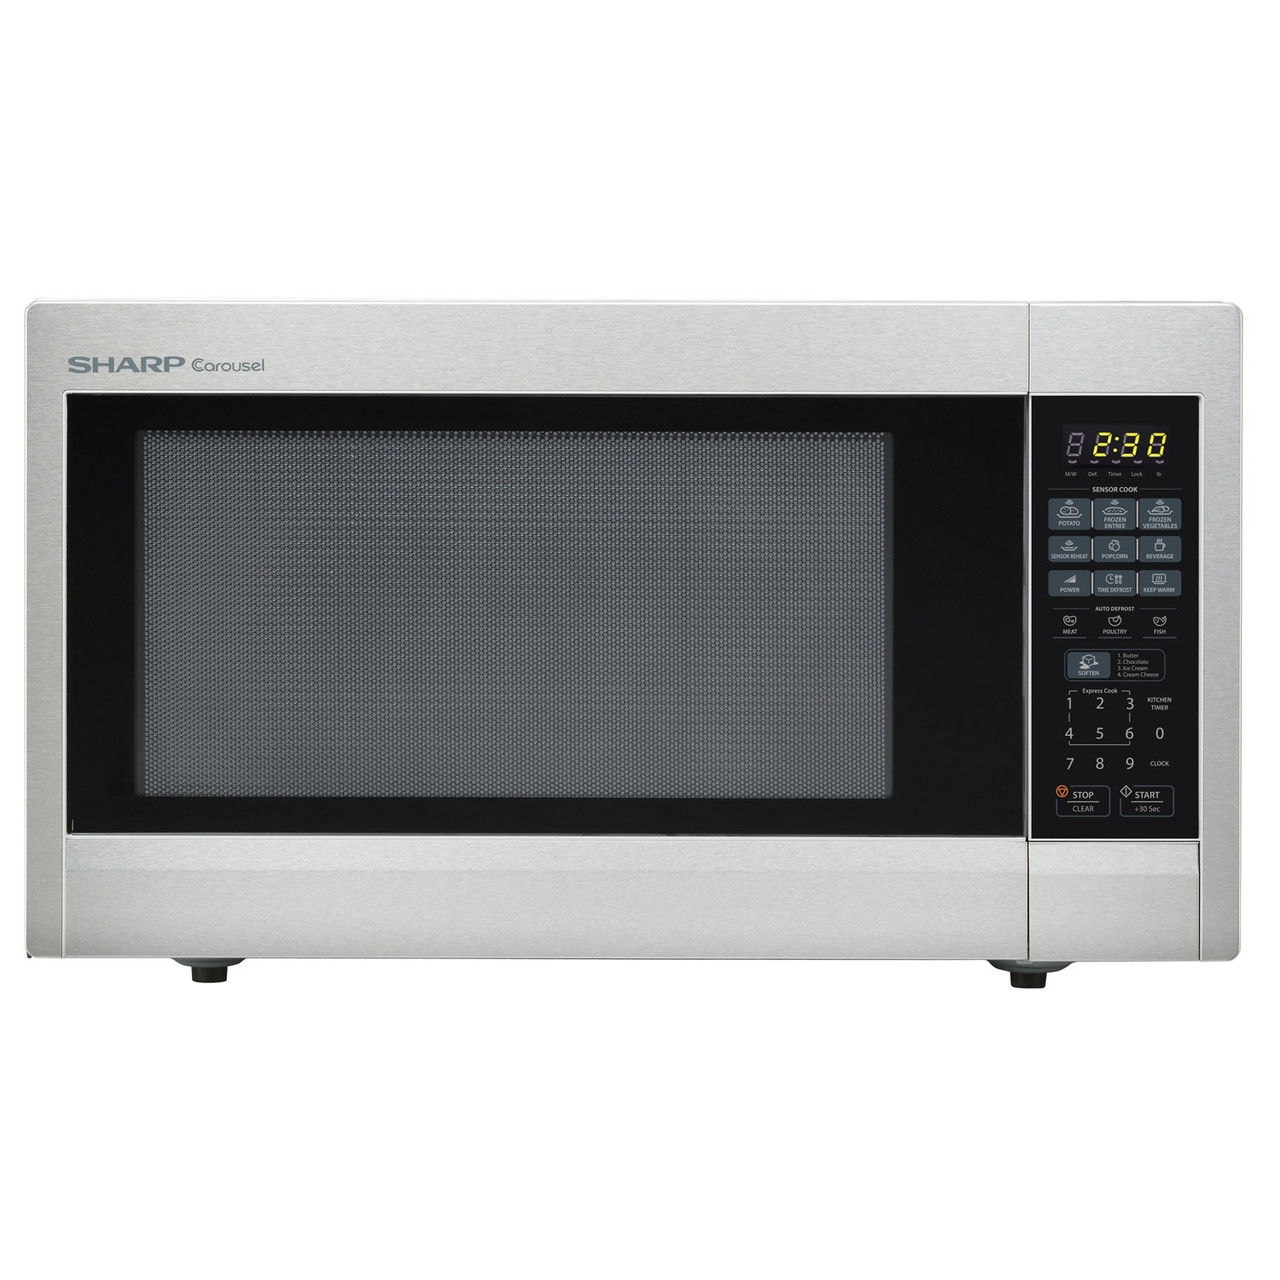 2 2 cu ft 1200w sharp stainless steel carousel countertop microwave oven r651zs